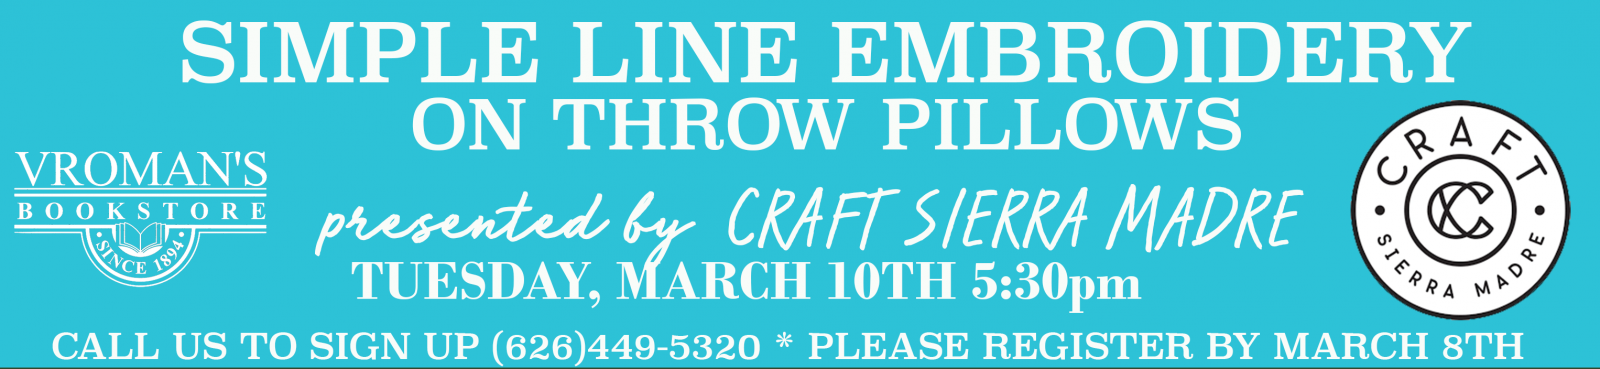 Simple Line Embroidery workshop on Tuesday, March 10, at 5:30pm. Please call us to sign up.